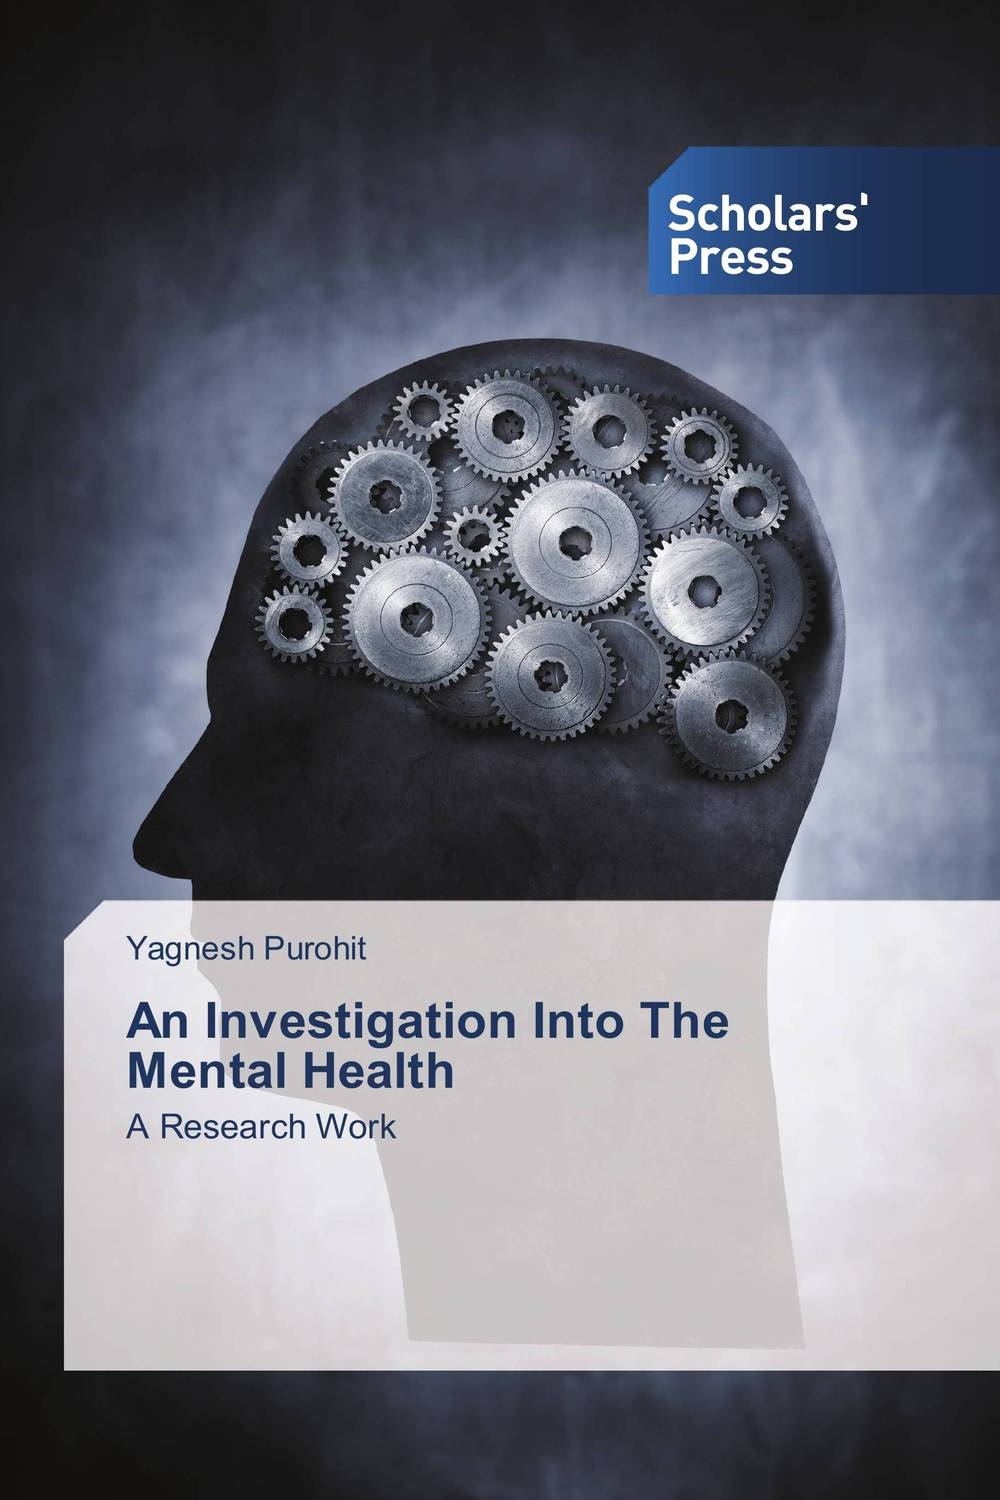 An Investigation Into The Mental Health prostate health devices is prostate removal prostatitis mainly for the prostate health and prostatitis health capsule